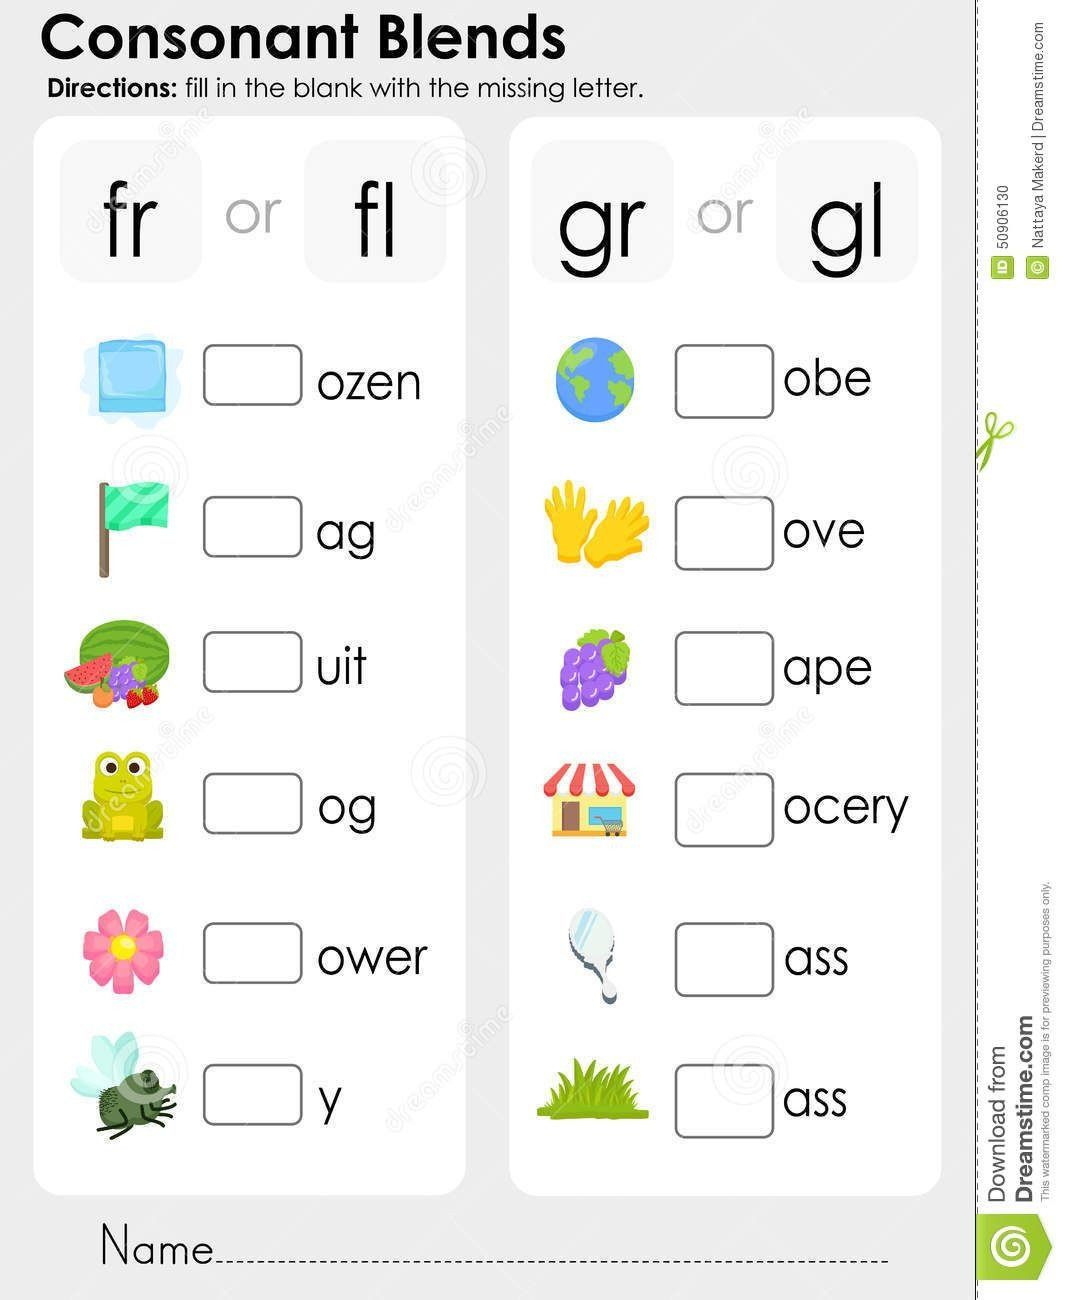 Free Printable R Blends Worksheets Consonant Blends